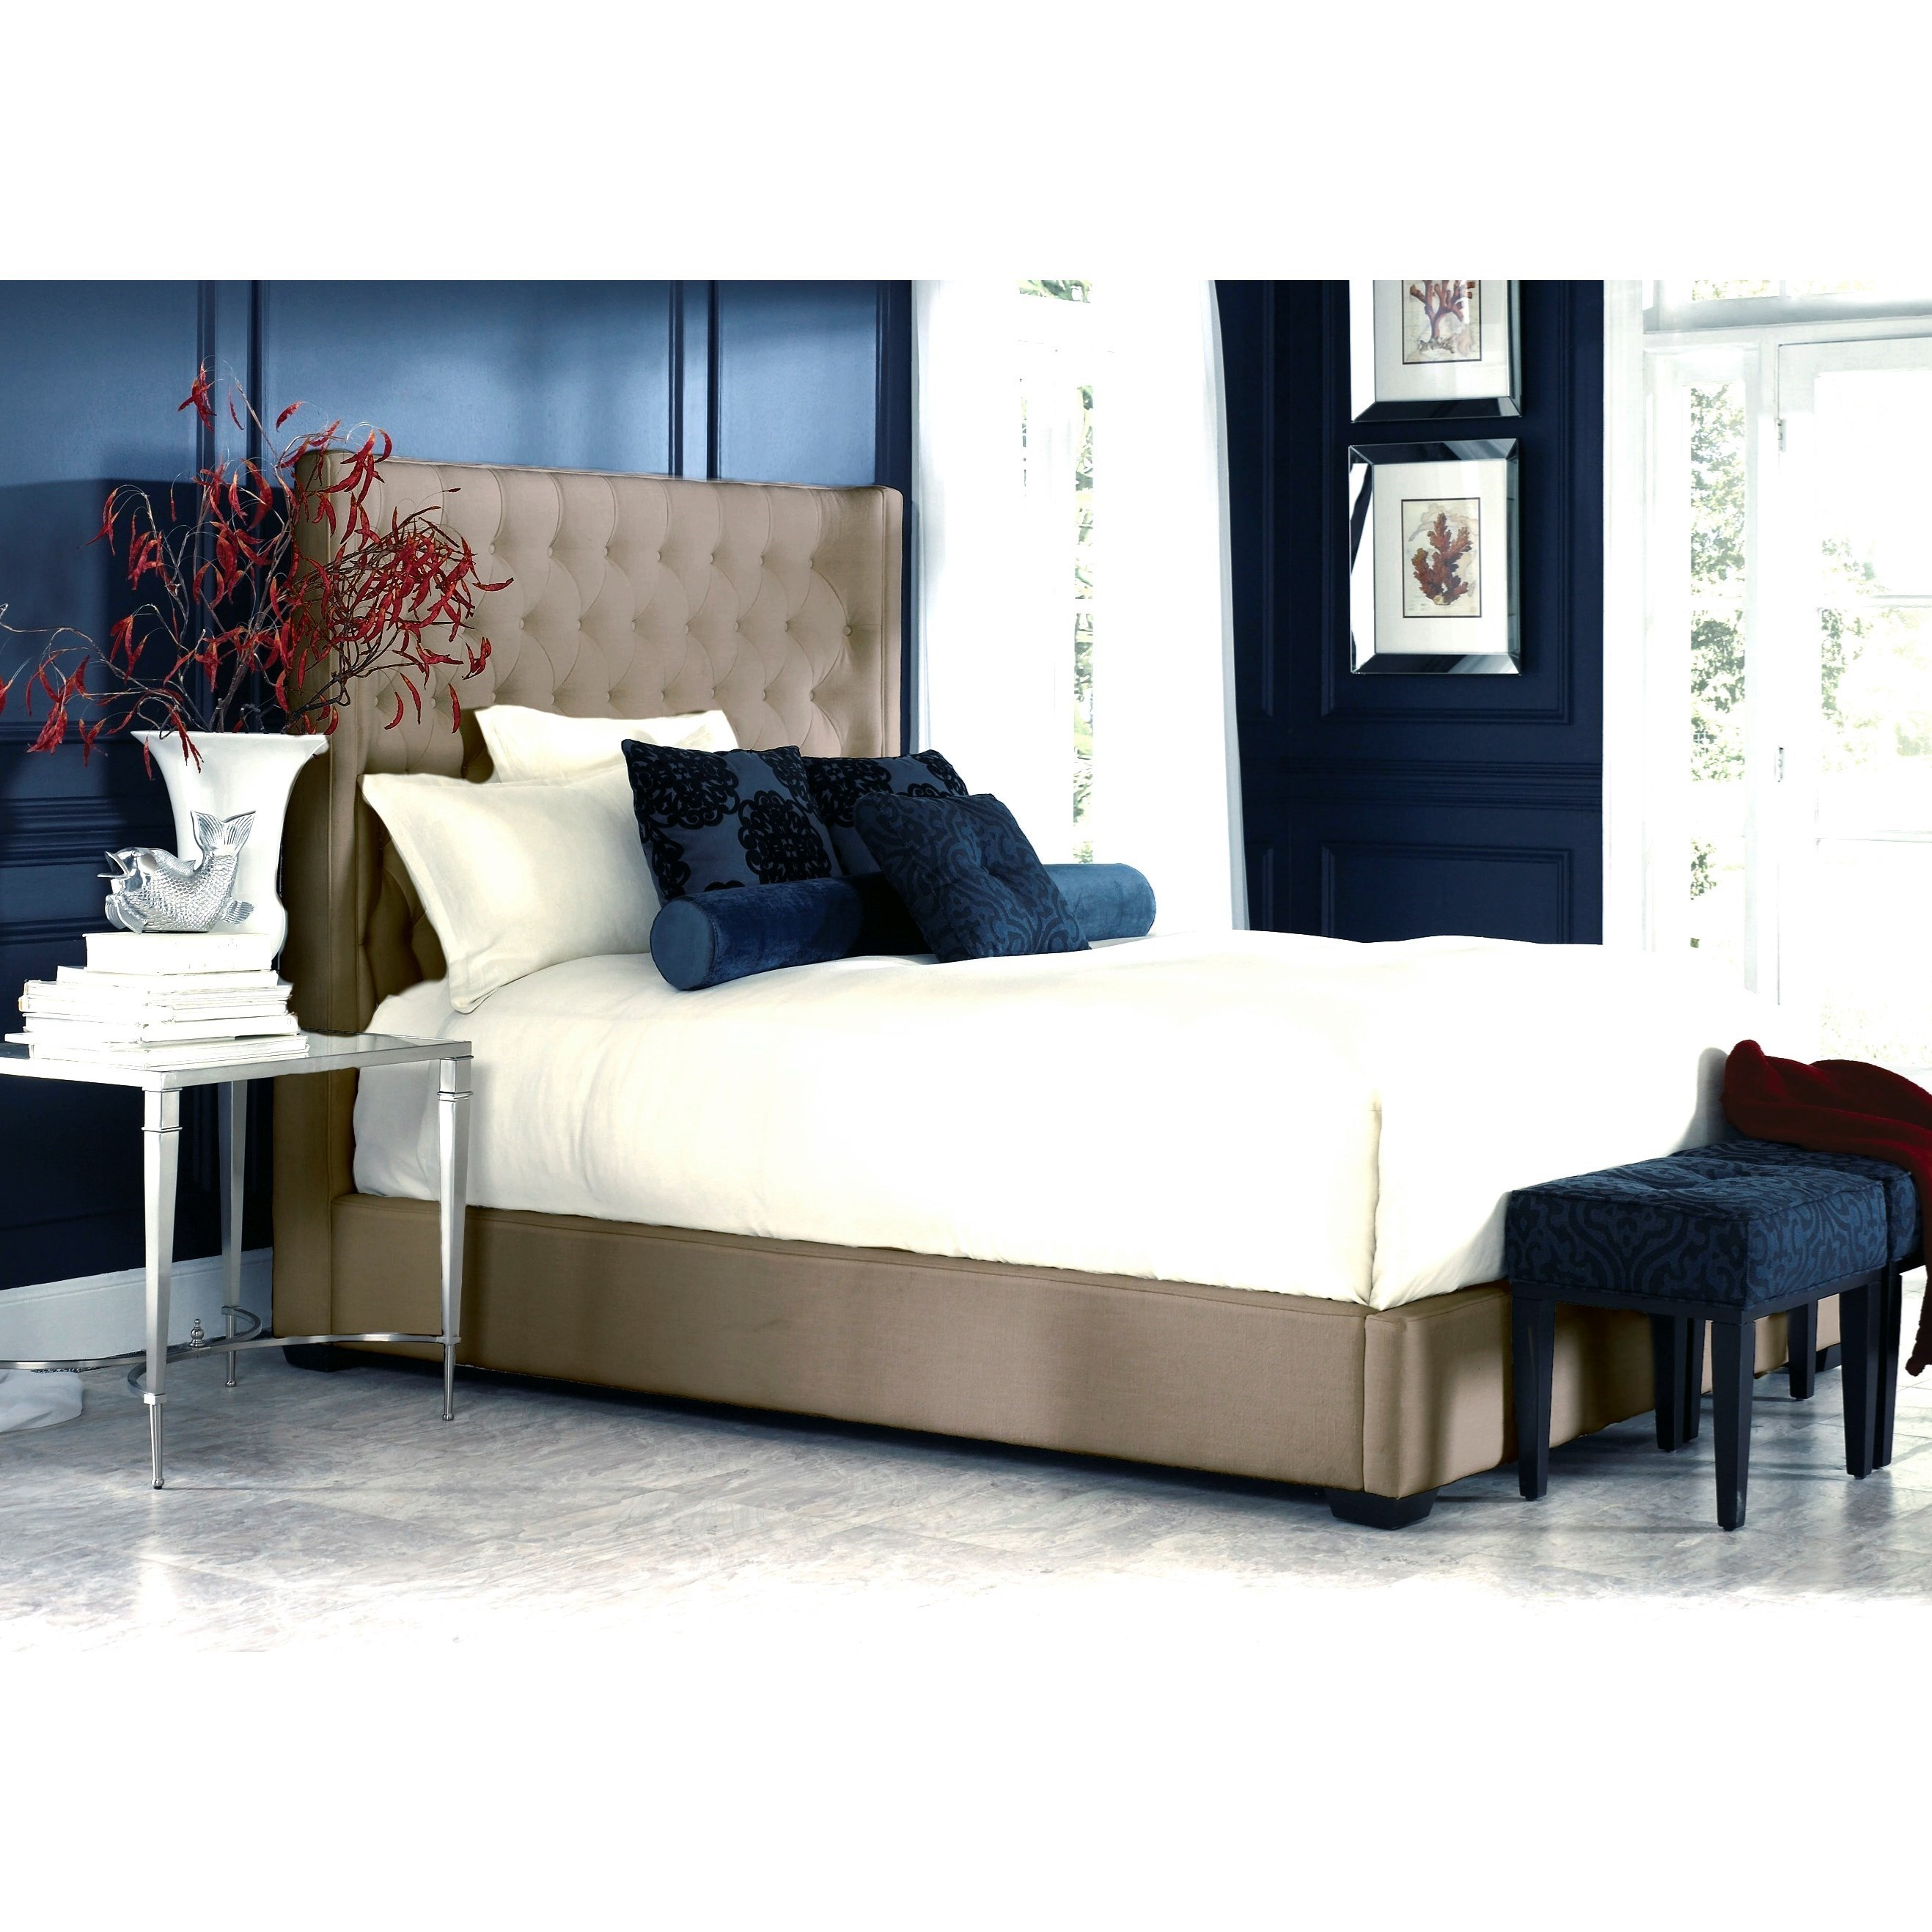 jonathan louis carly queen storage bed homeworld furniture upholstered beds